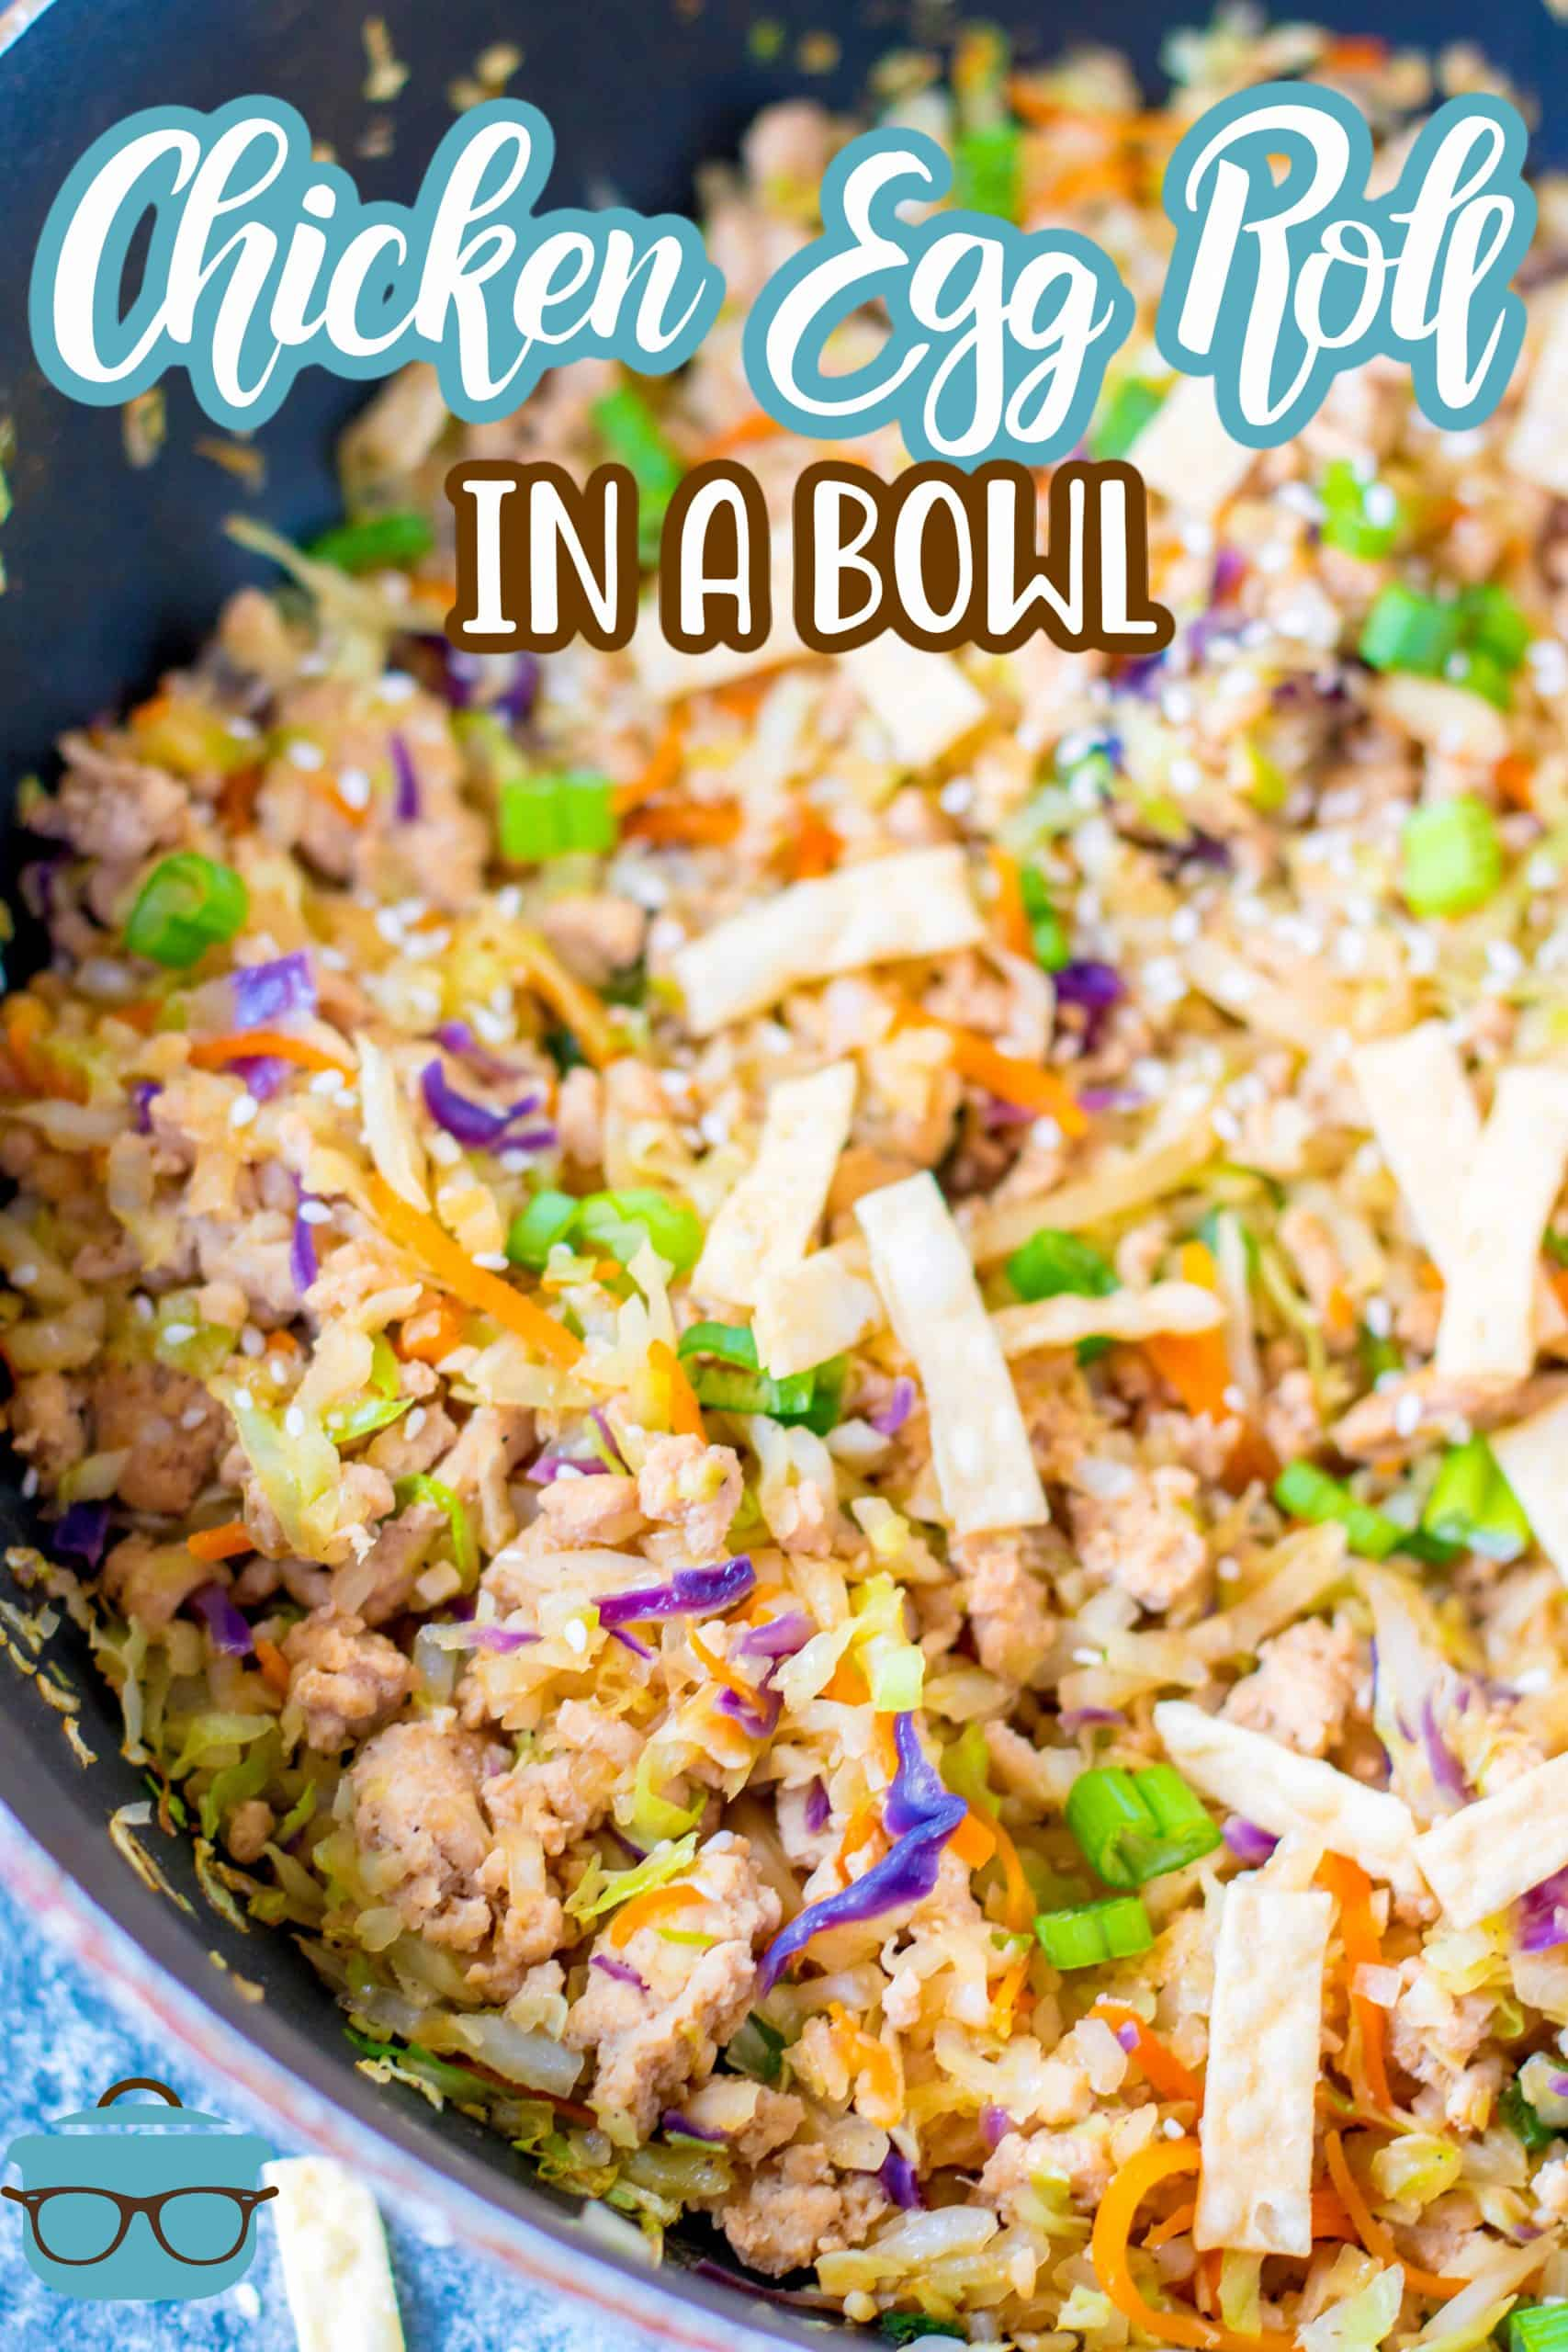 This recipe for Chicken Egg Roll in a Bowl is a fun and unique spin on your traditional egg roll recipe. Easy, flavorful and just a handful of ingredients!